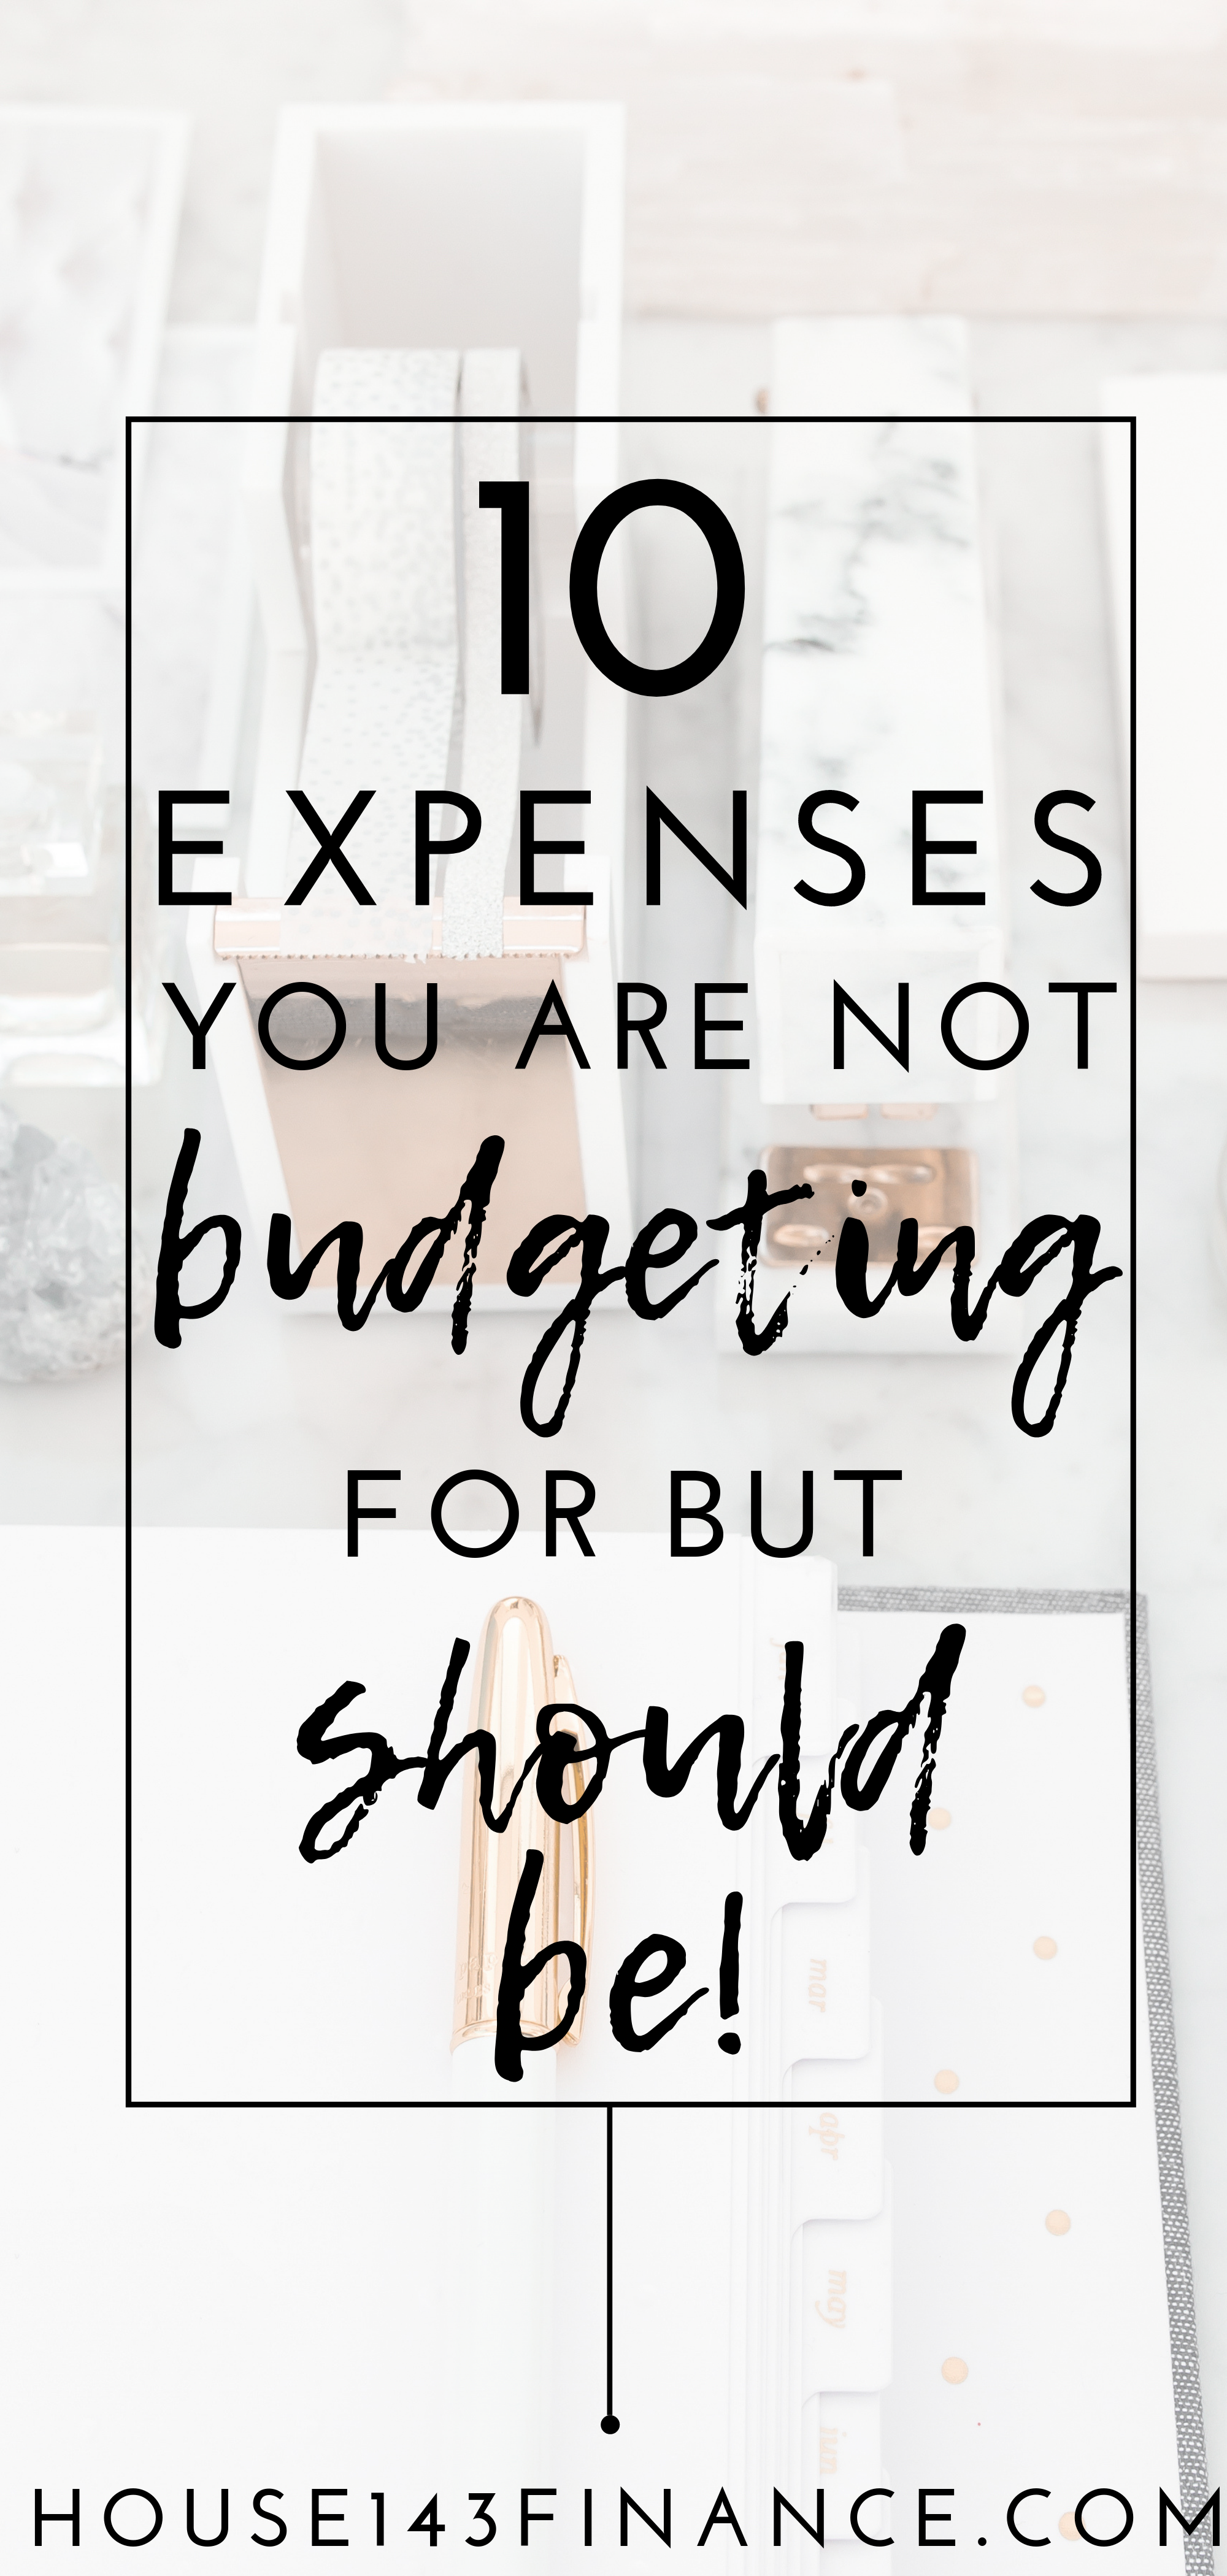 10 Expenses You Are Not Budgeting For But Should Be